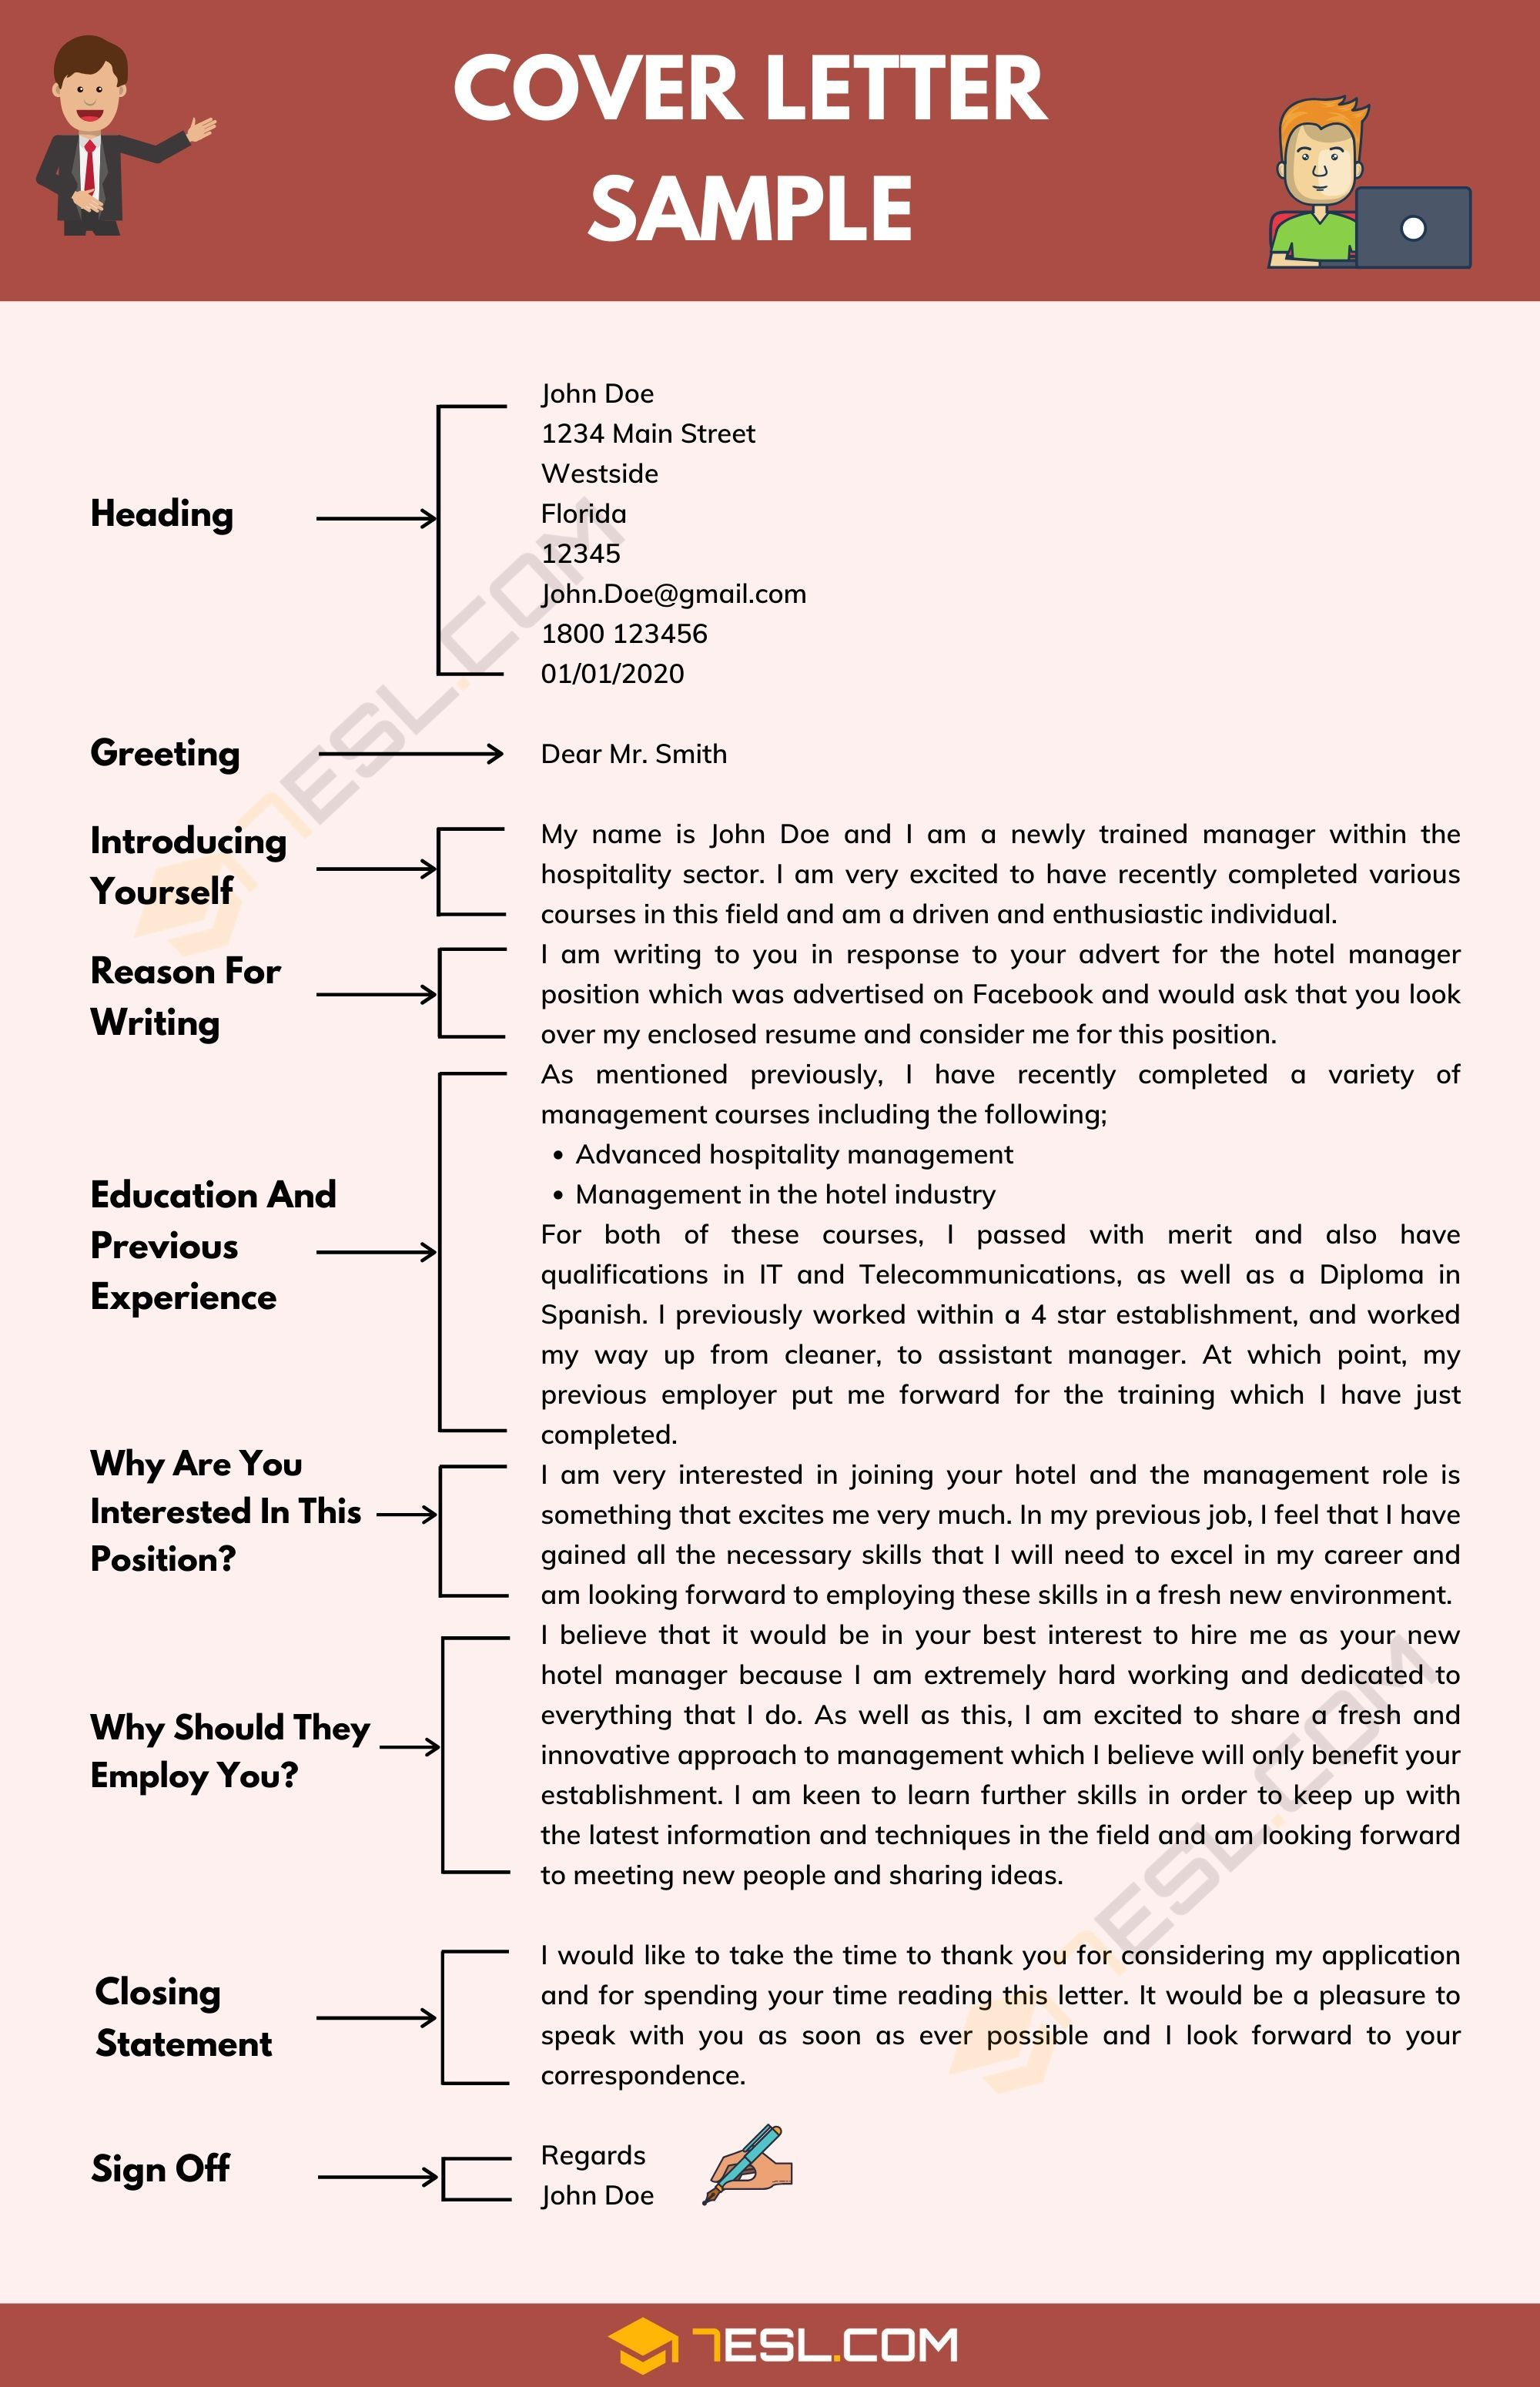 How To Write A Cover Letter Useful Tips Common Phrases And Great Examples Writing A Cover Letter Job Cover Letter Lettering